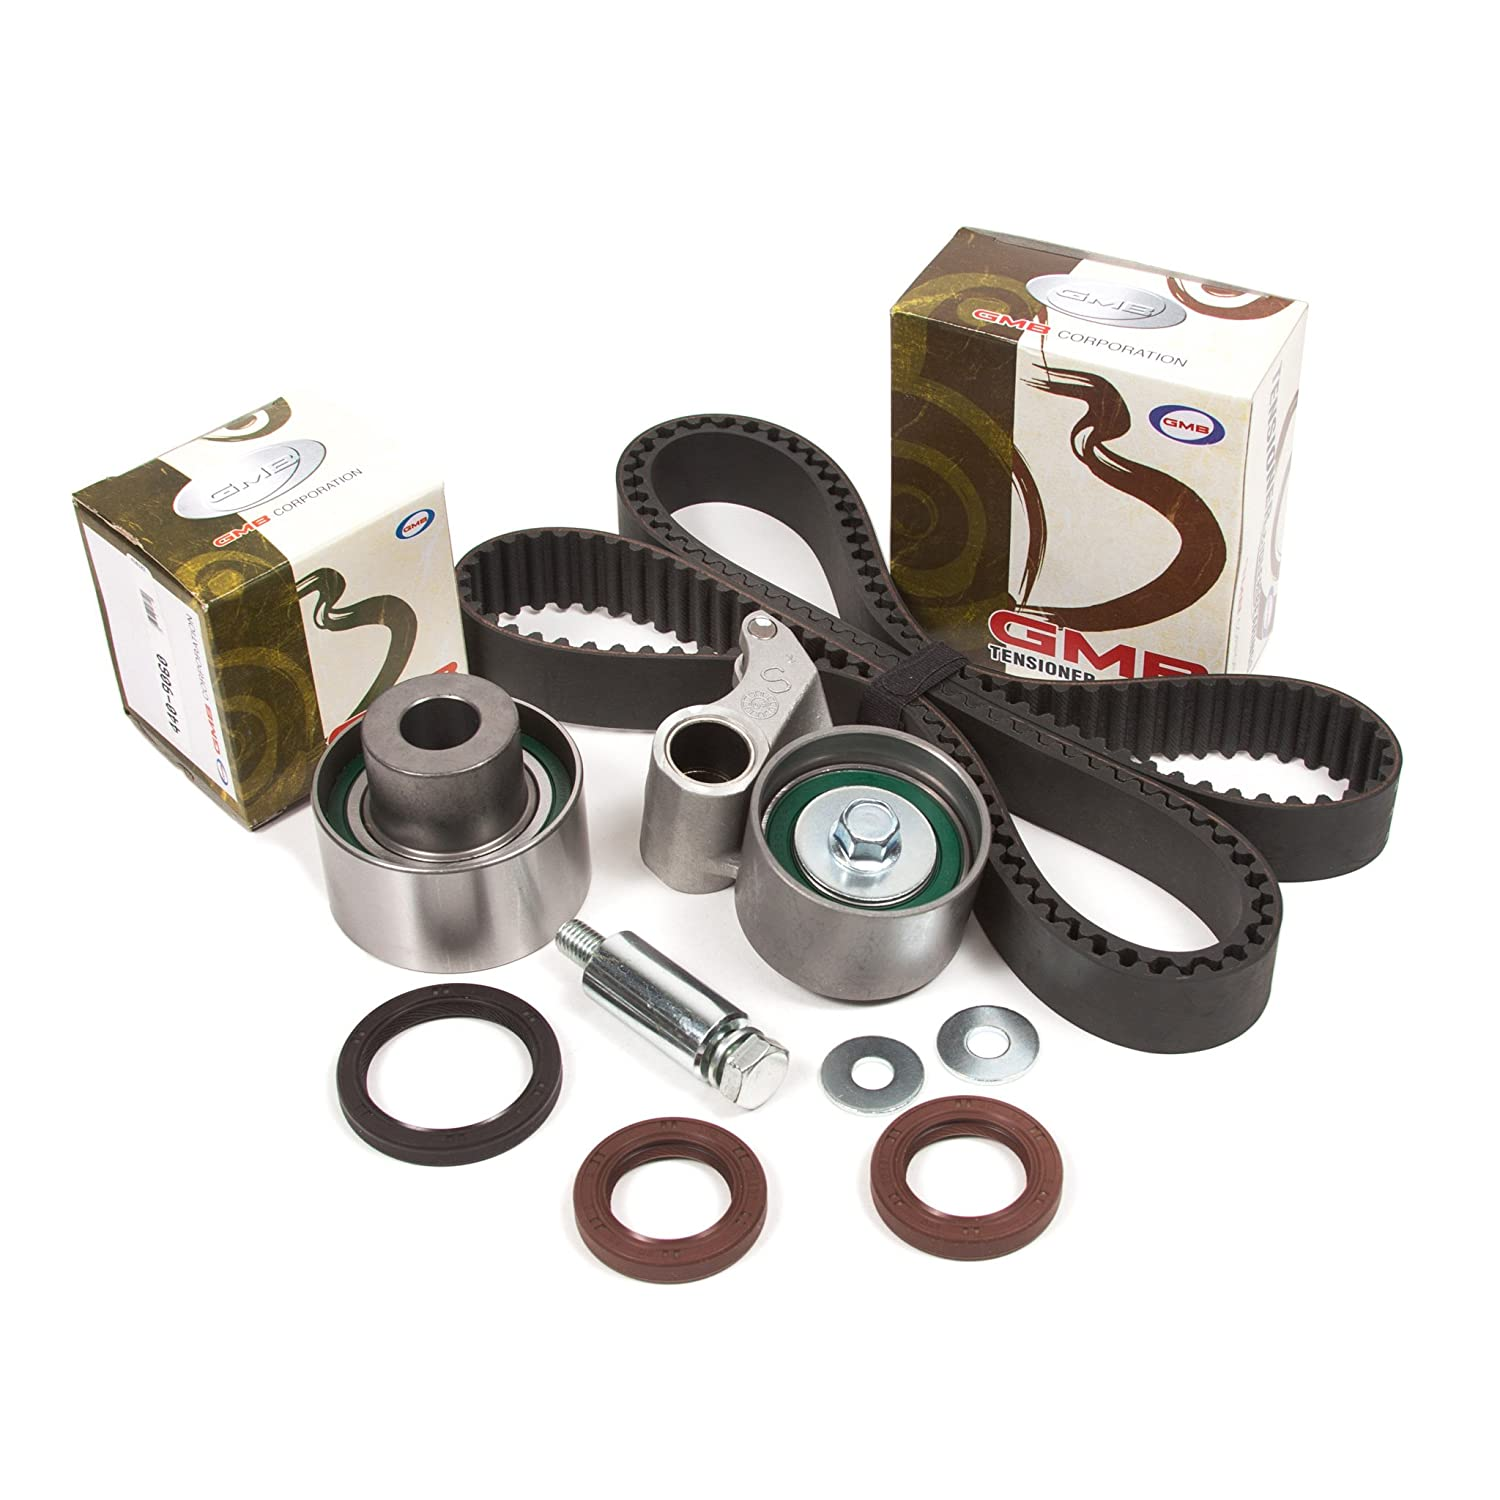 Evergreen Ok7009 2 1 96 97 Isuzu Rodeo Trooper Honda 1996 Starter Location Passport Acura Slx 32 Sohc 24v 6vd1 Engine Rebuild Kit Automotive